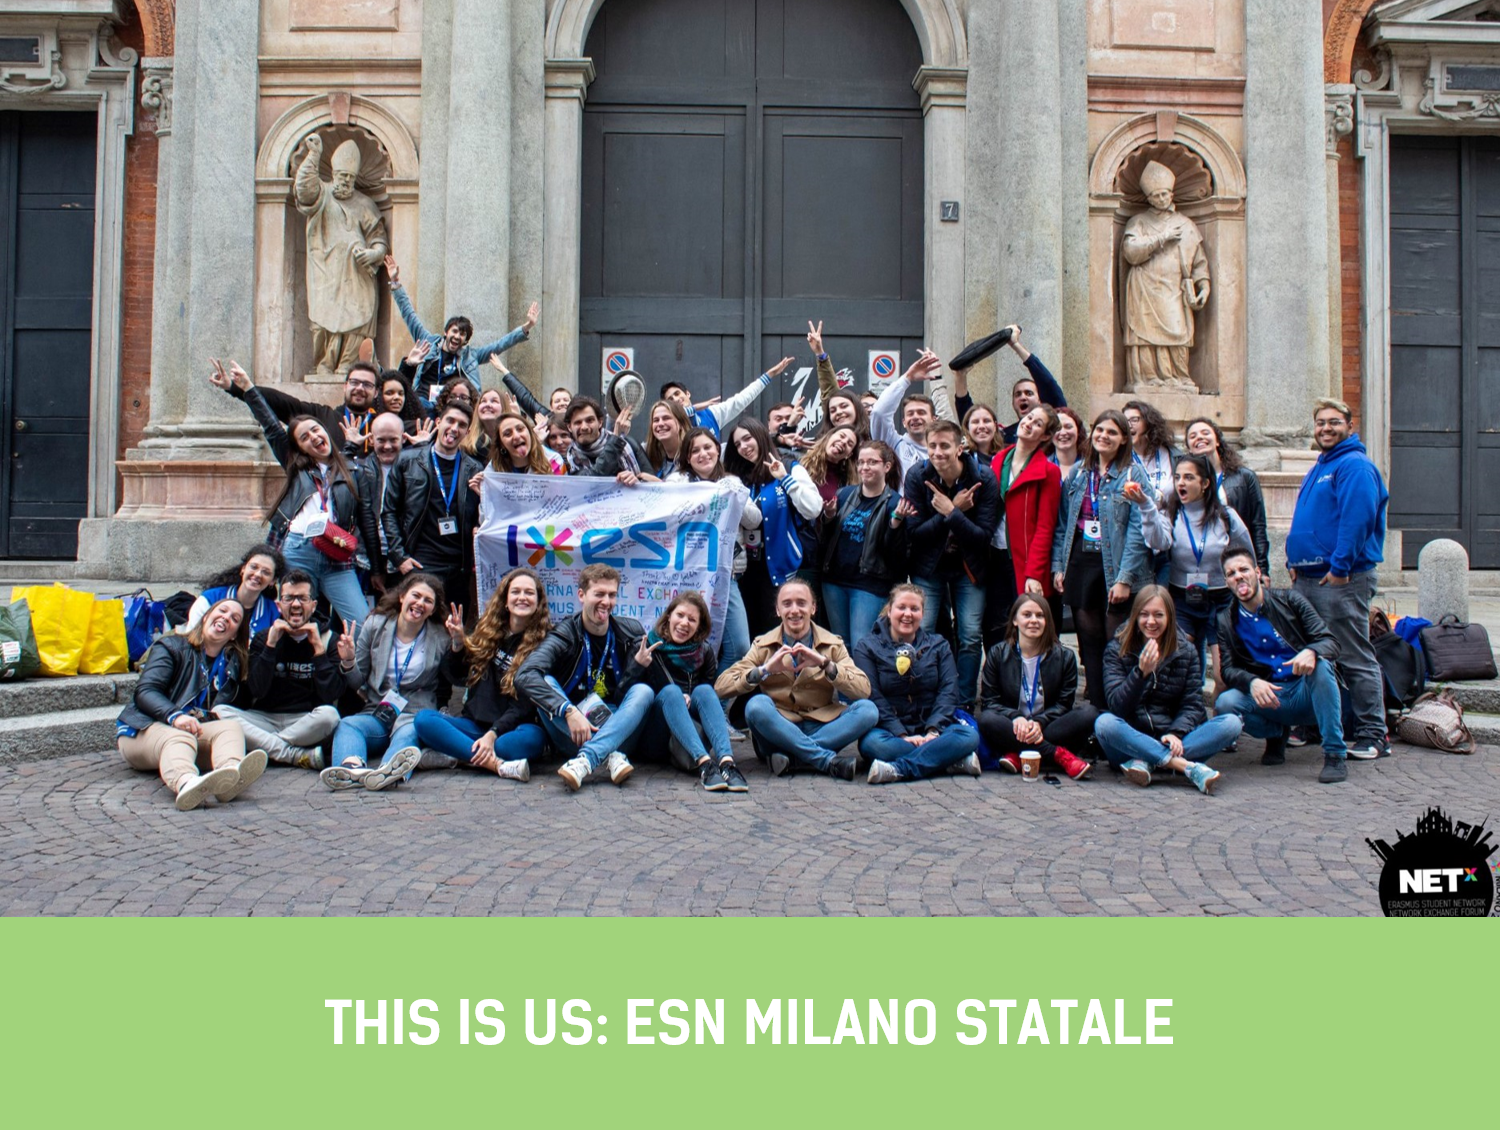 milano_statale.png